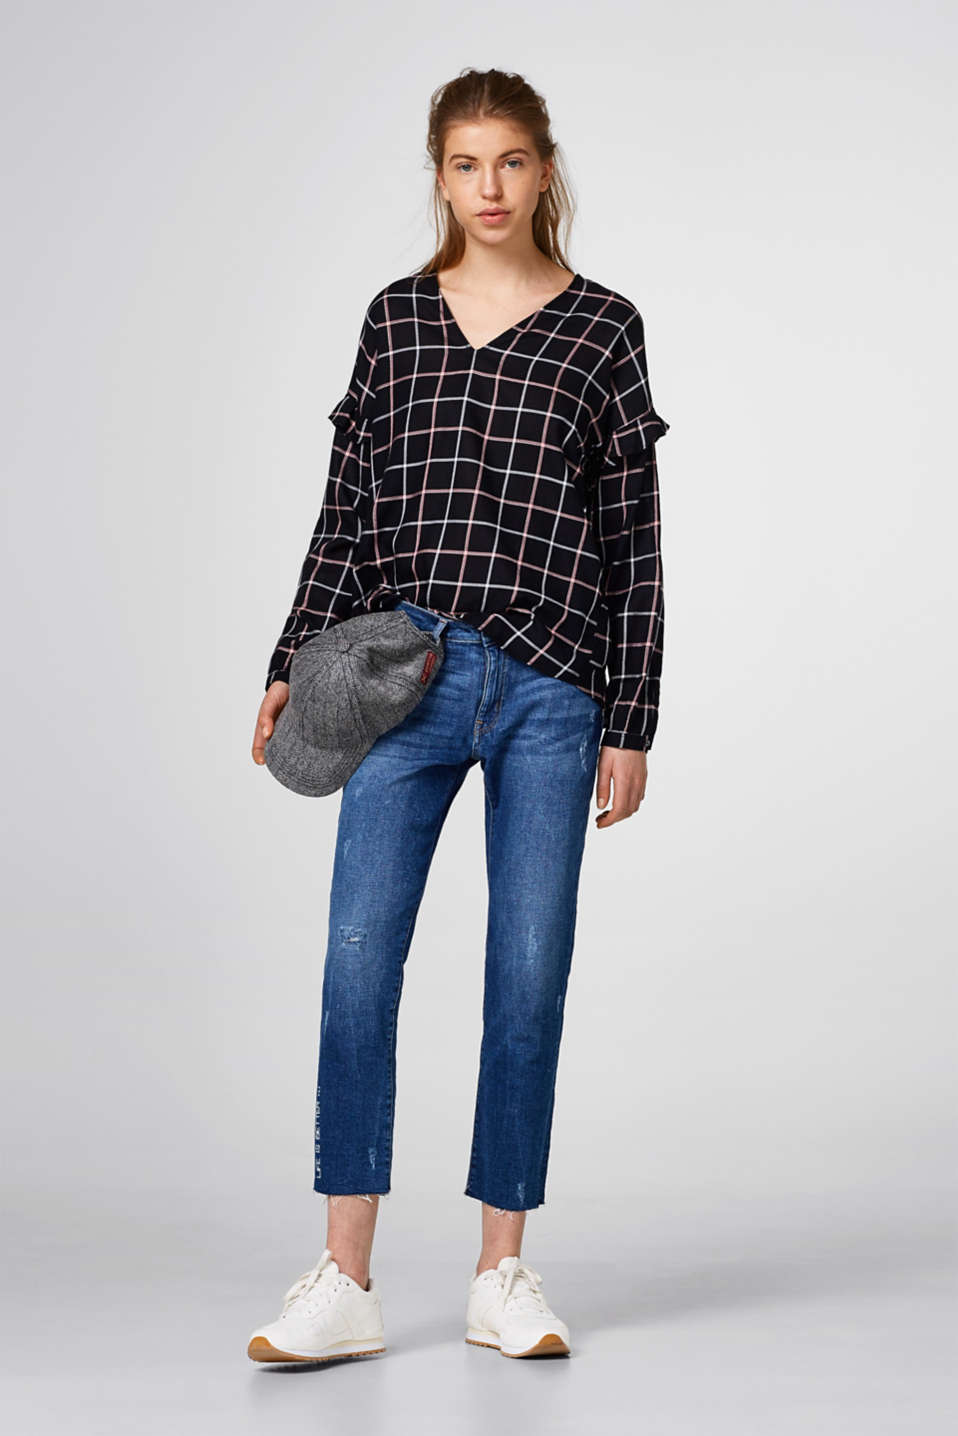 Flowing check blouse with metallic effects